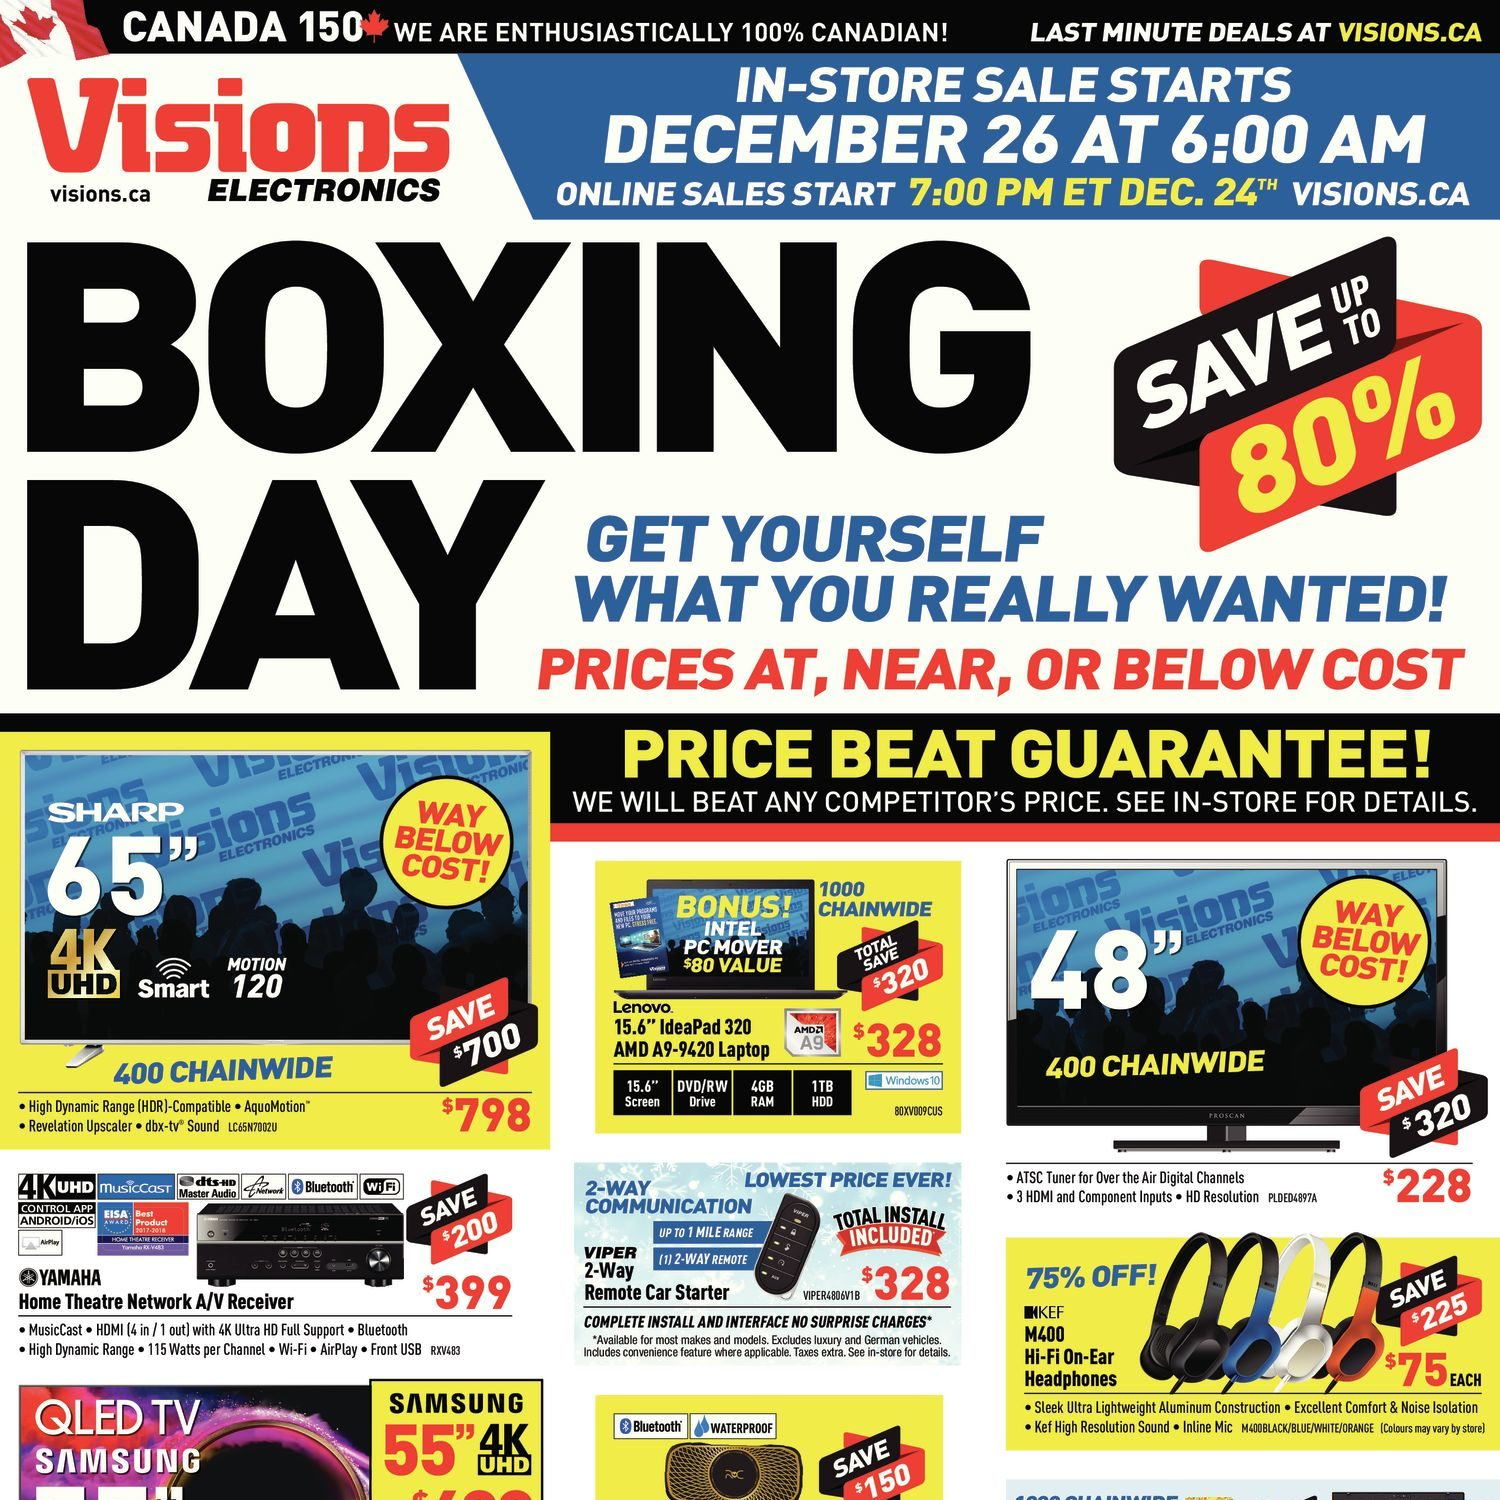 Visions electronics weekly flyer boxing day dec 24 26 redflagdeals com